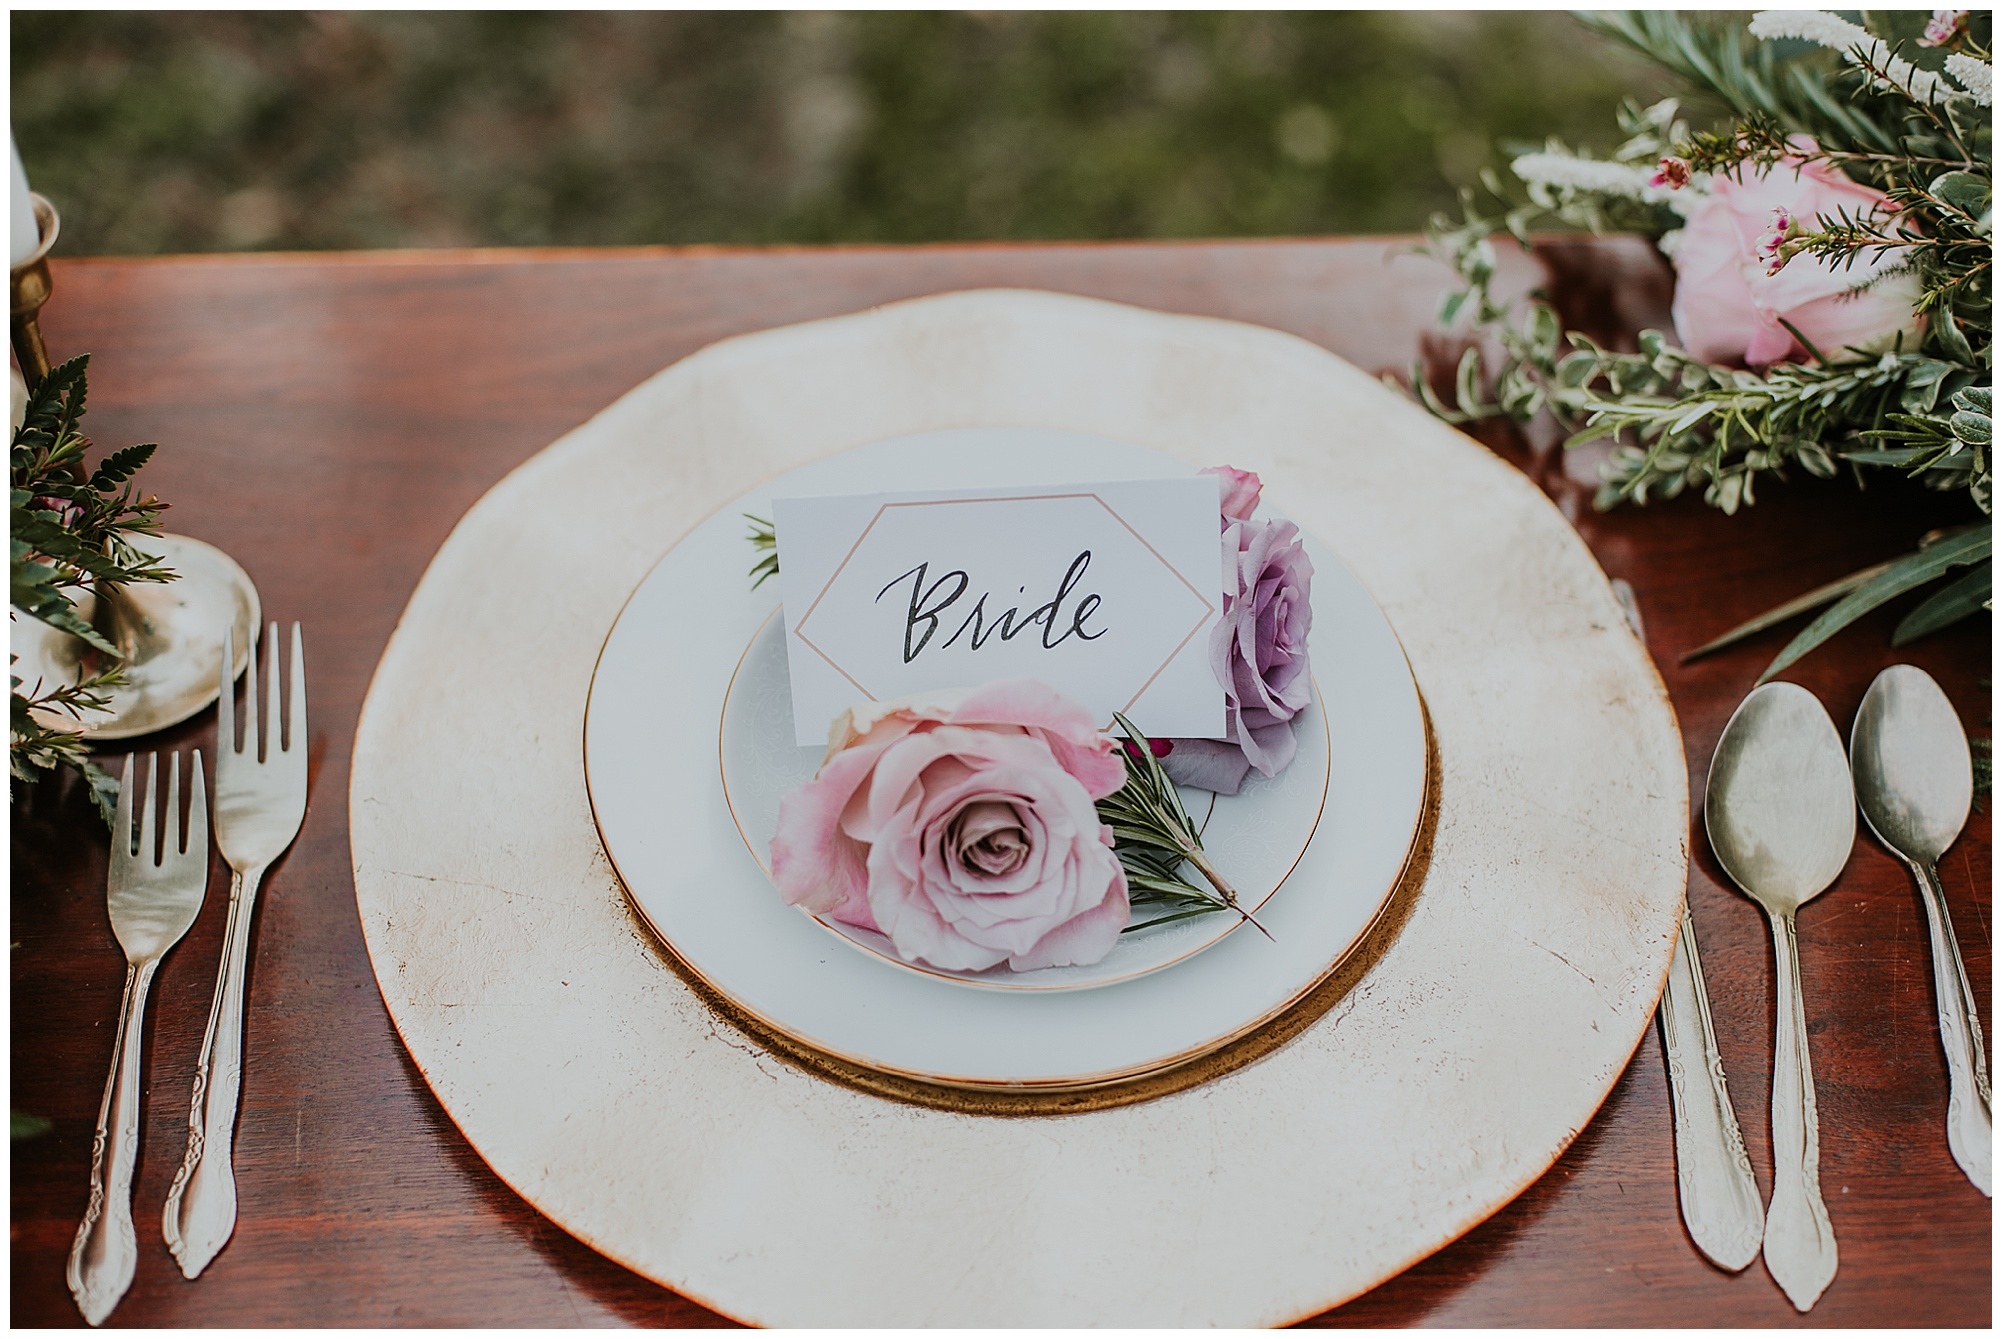 romantic and vintage style table setting with roses, rosemary, greenery, and gold.